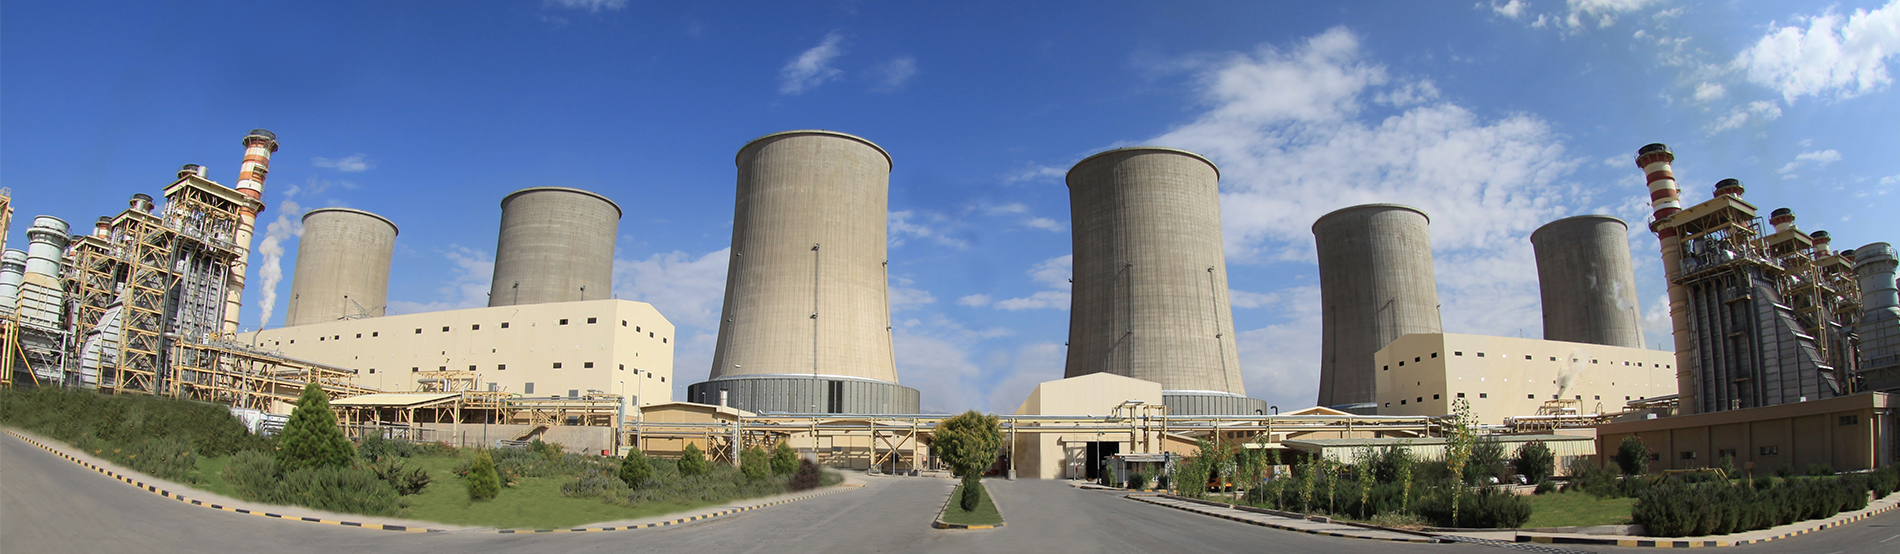 Damavand Combined Cycle Power Plant